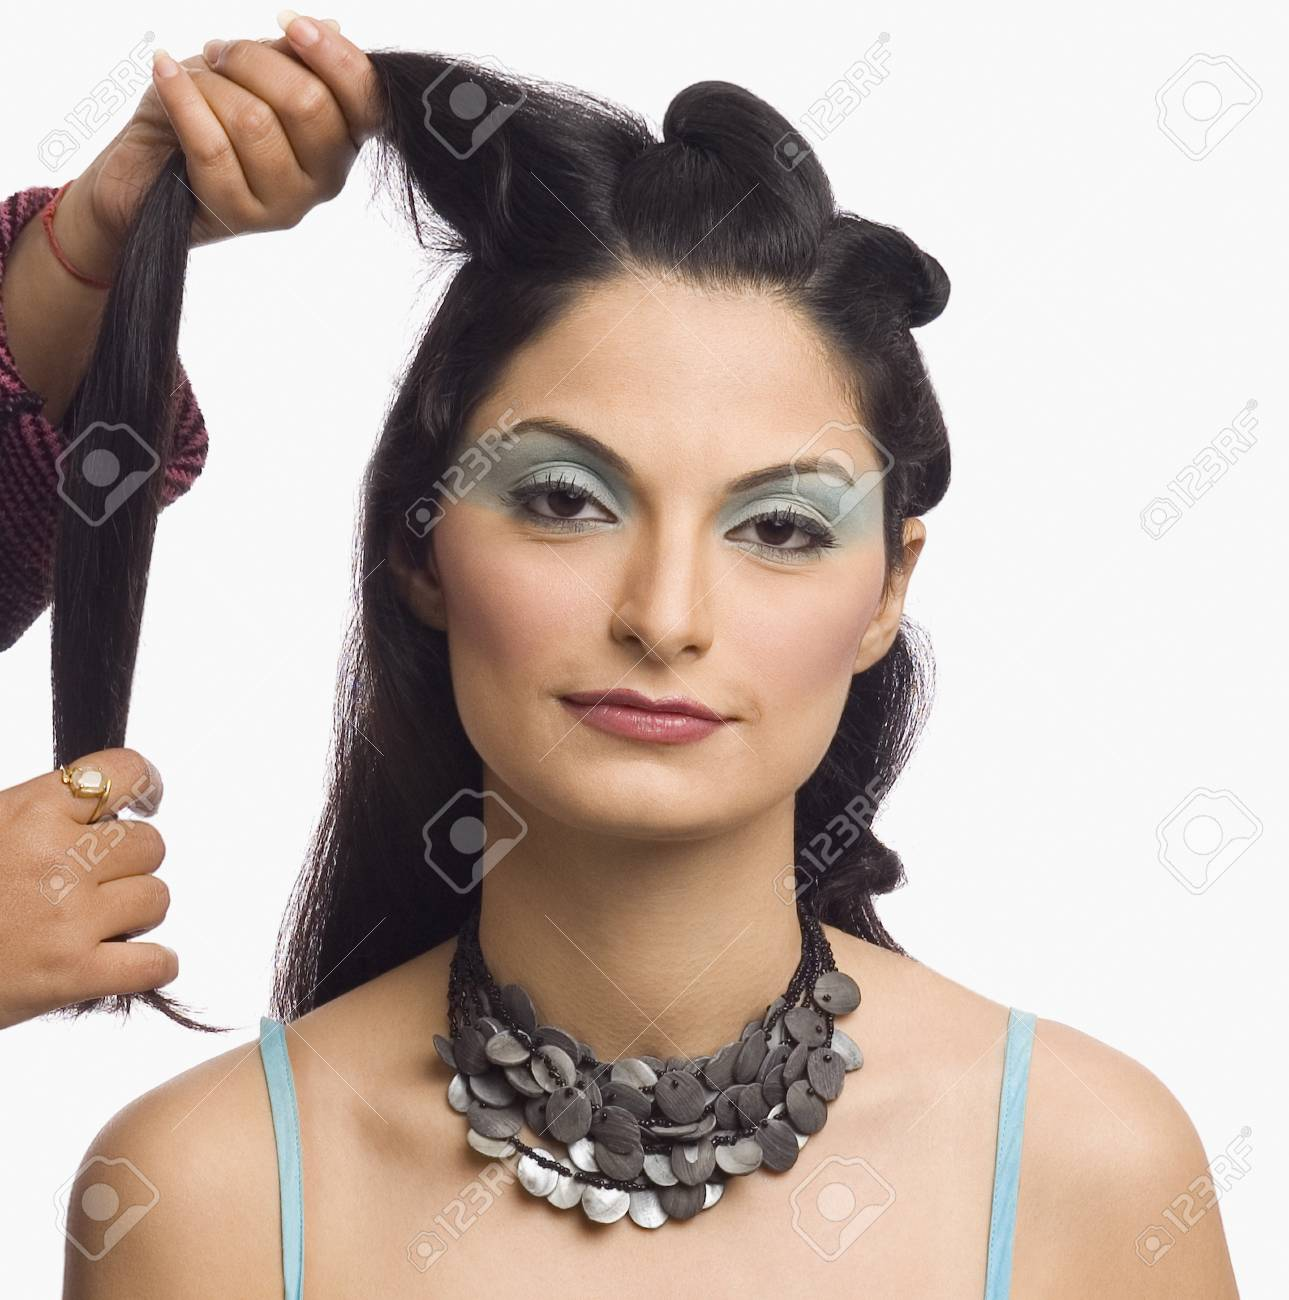 Person's hands styling a young woman's hair Stock Photo - 10123720